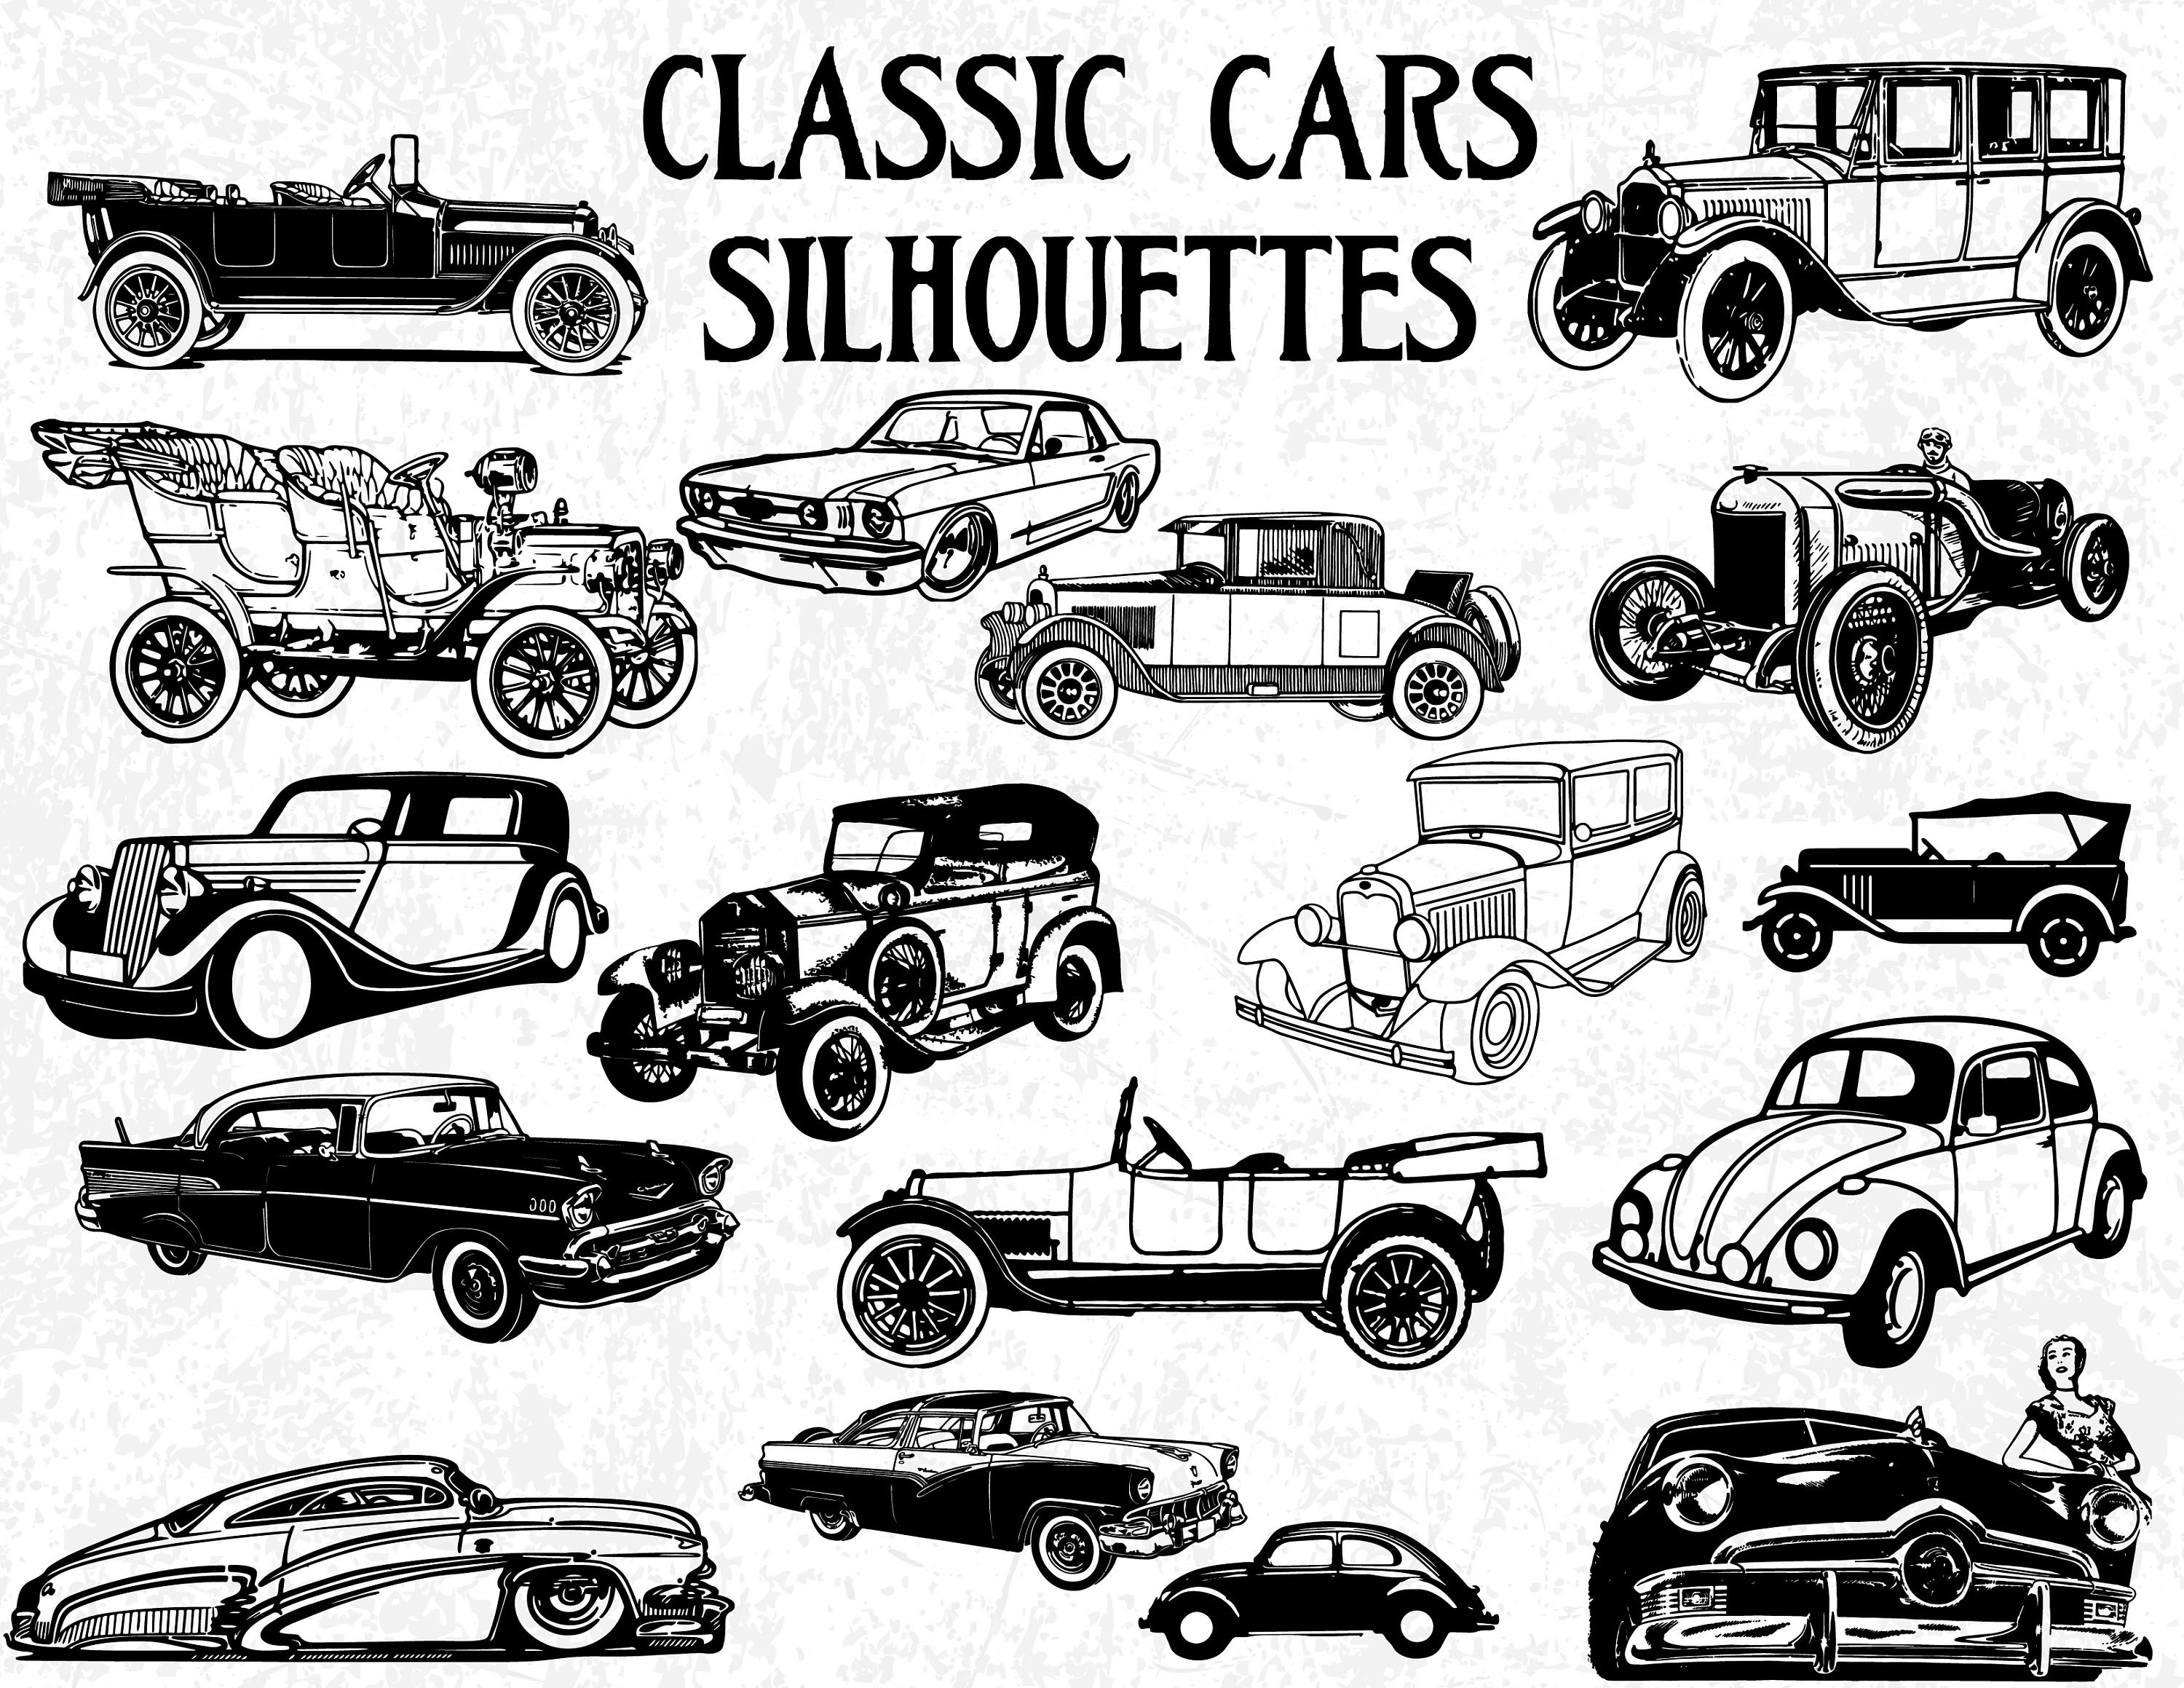 17 Classic Cars Silhouettes Vintage Cars Silhouettes Classic Etsy